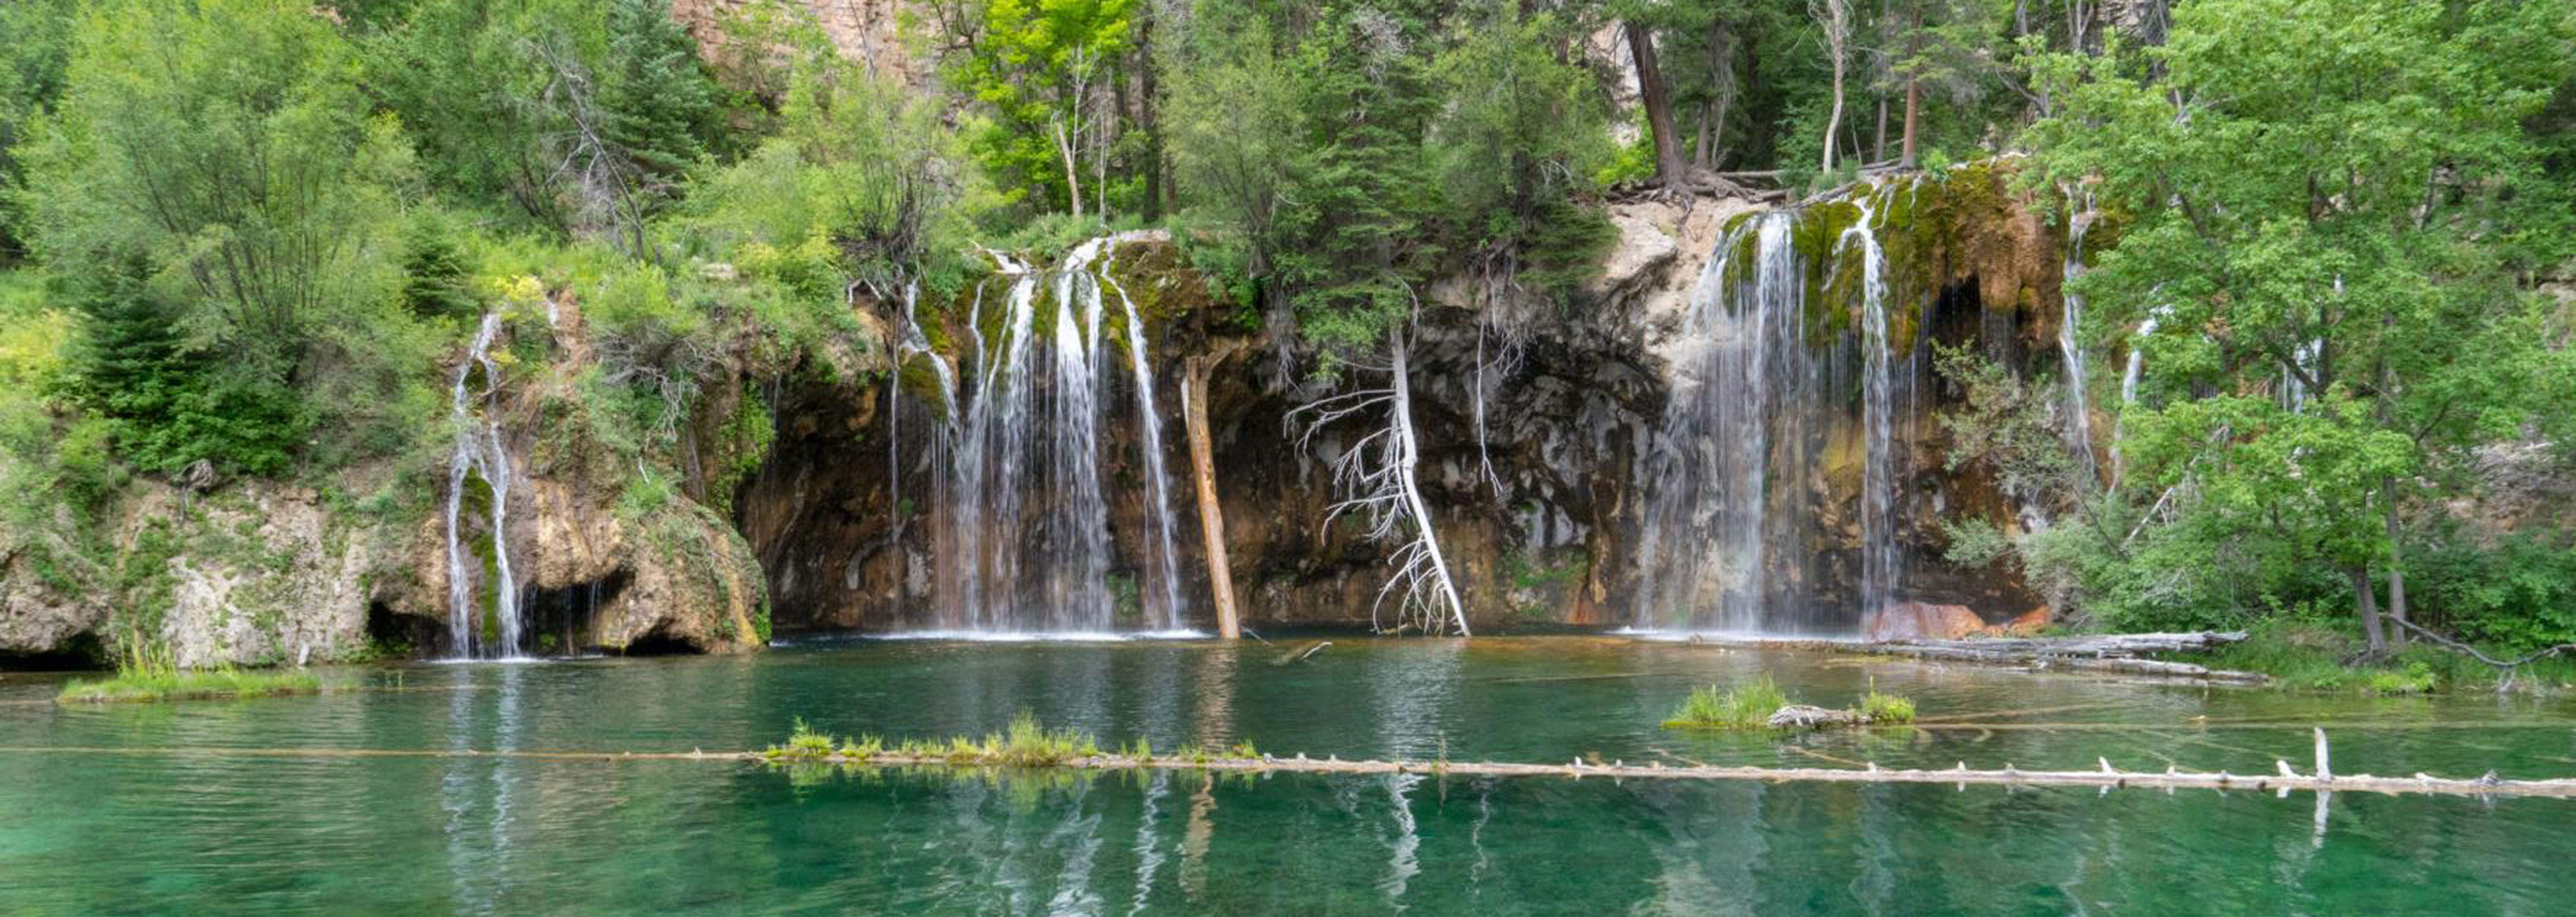 Image of Hanging Lake at the Hotel Colorado, 1893, Member of Historic Hotels of America, Glenwood Springs, Colorado, Explore